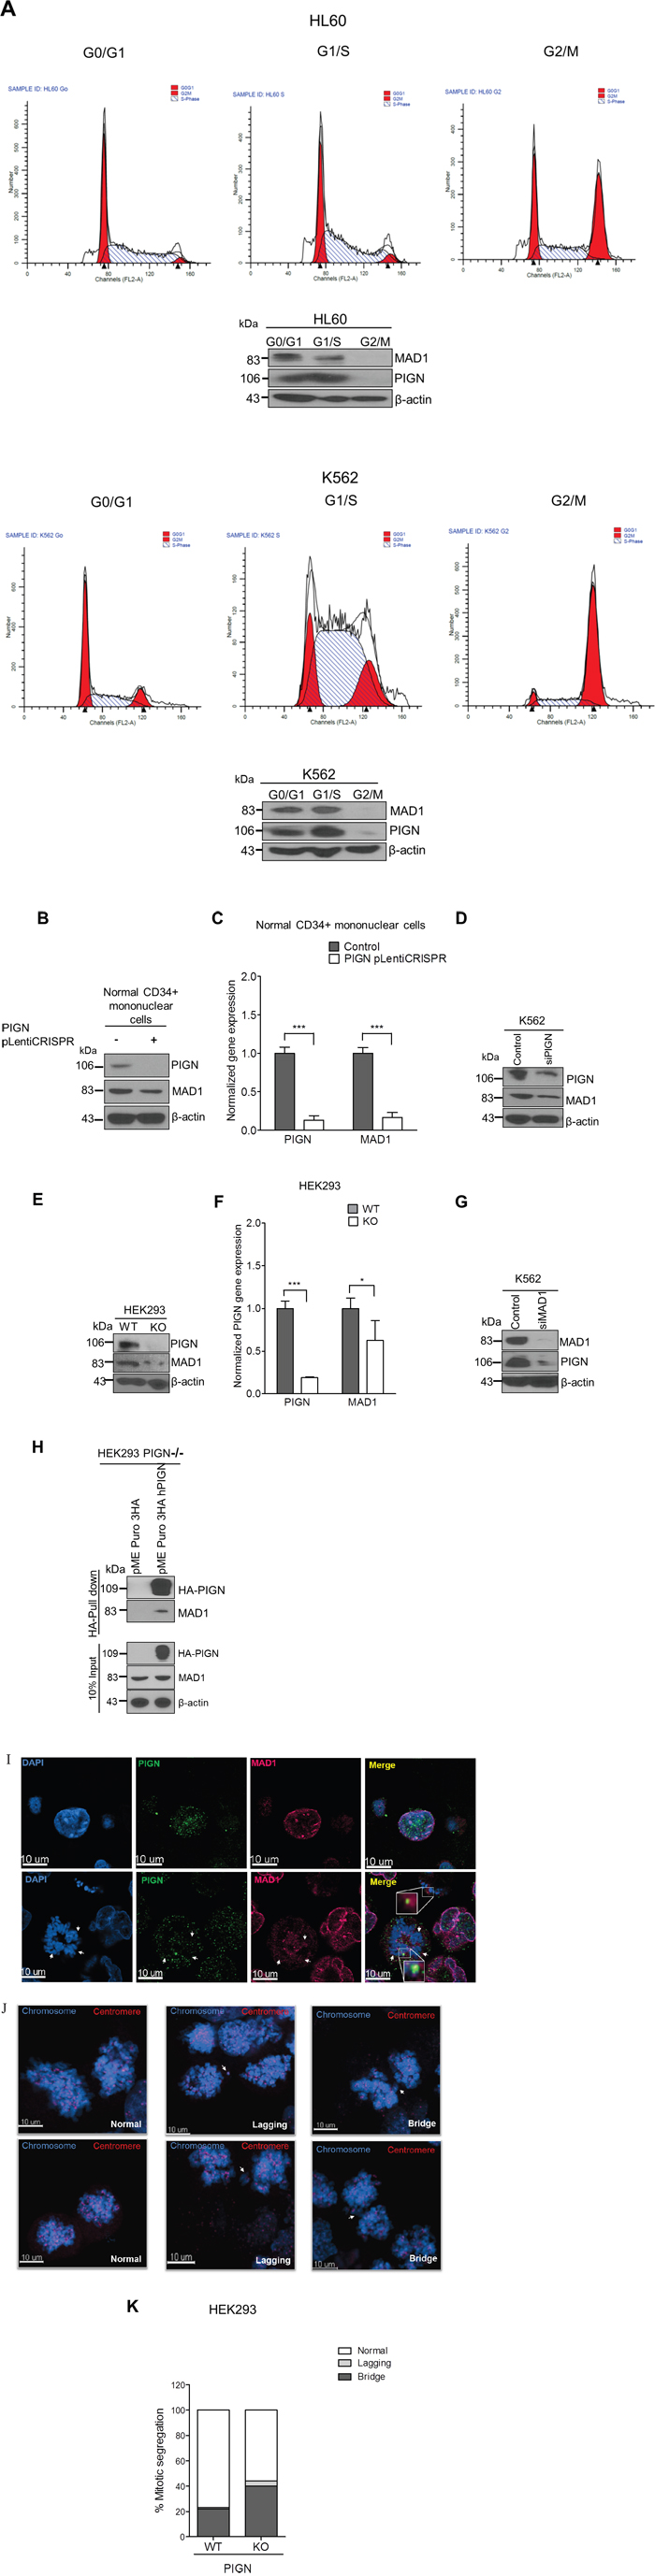 PIGN loss induced chromosomal instability via dysregulation of the spindle assembly checkpoint protein MAD1.